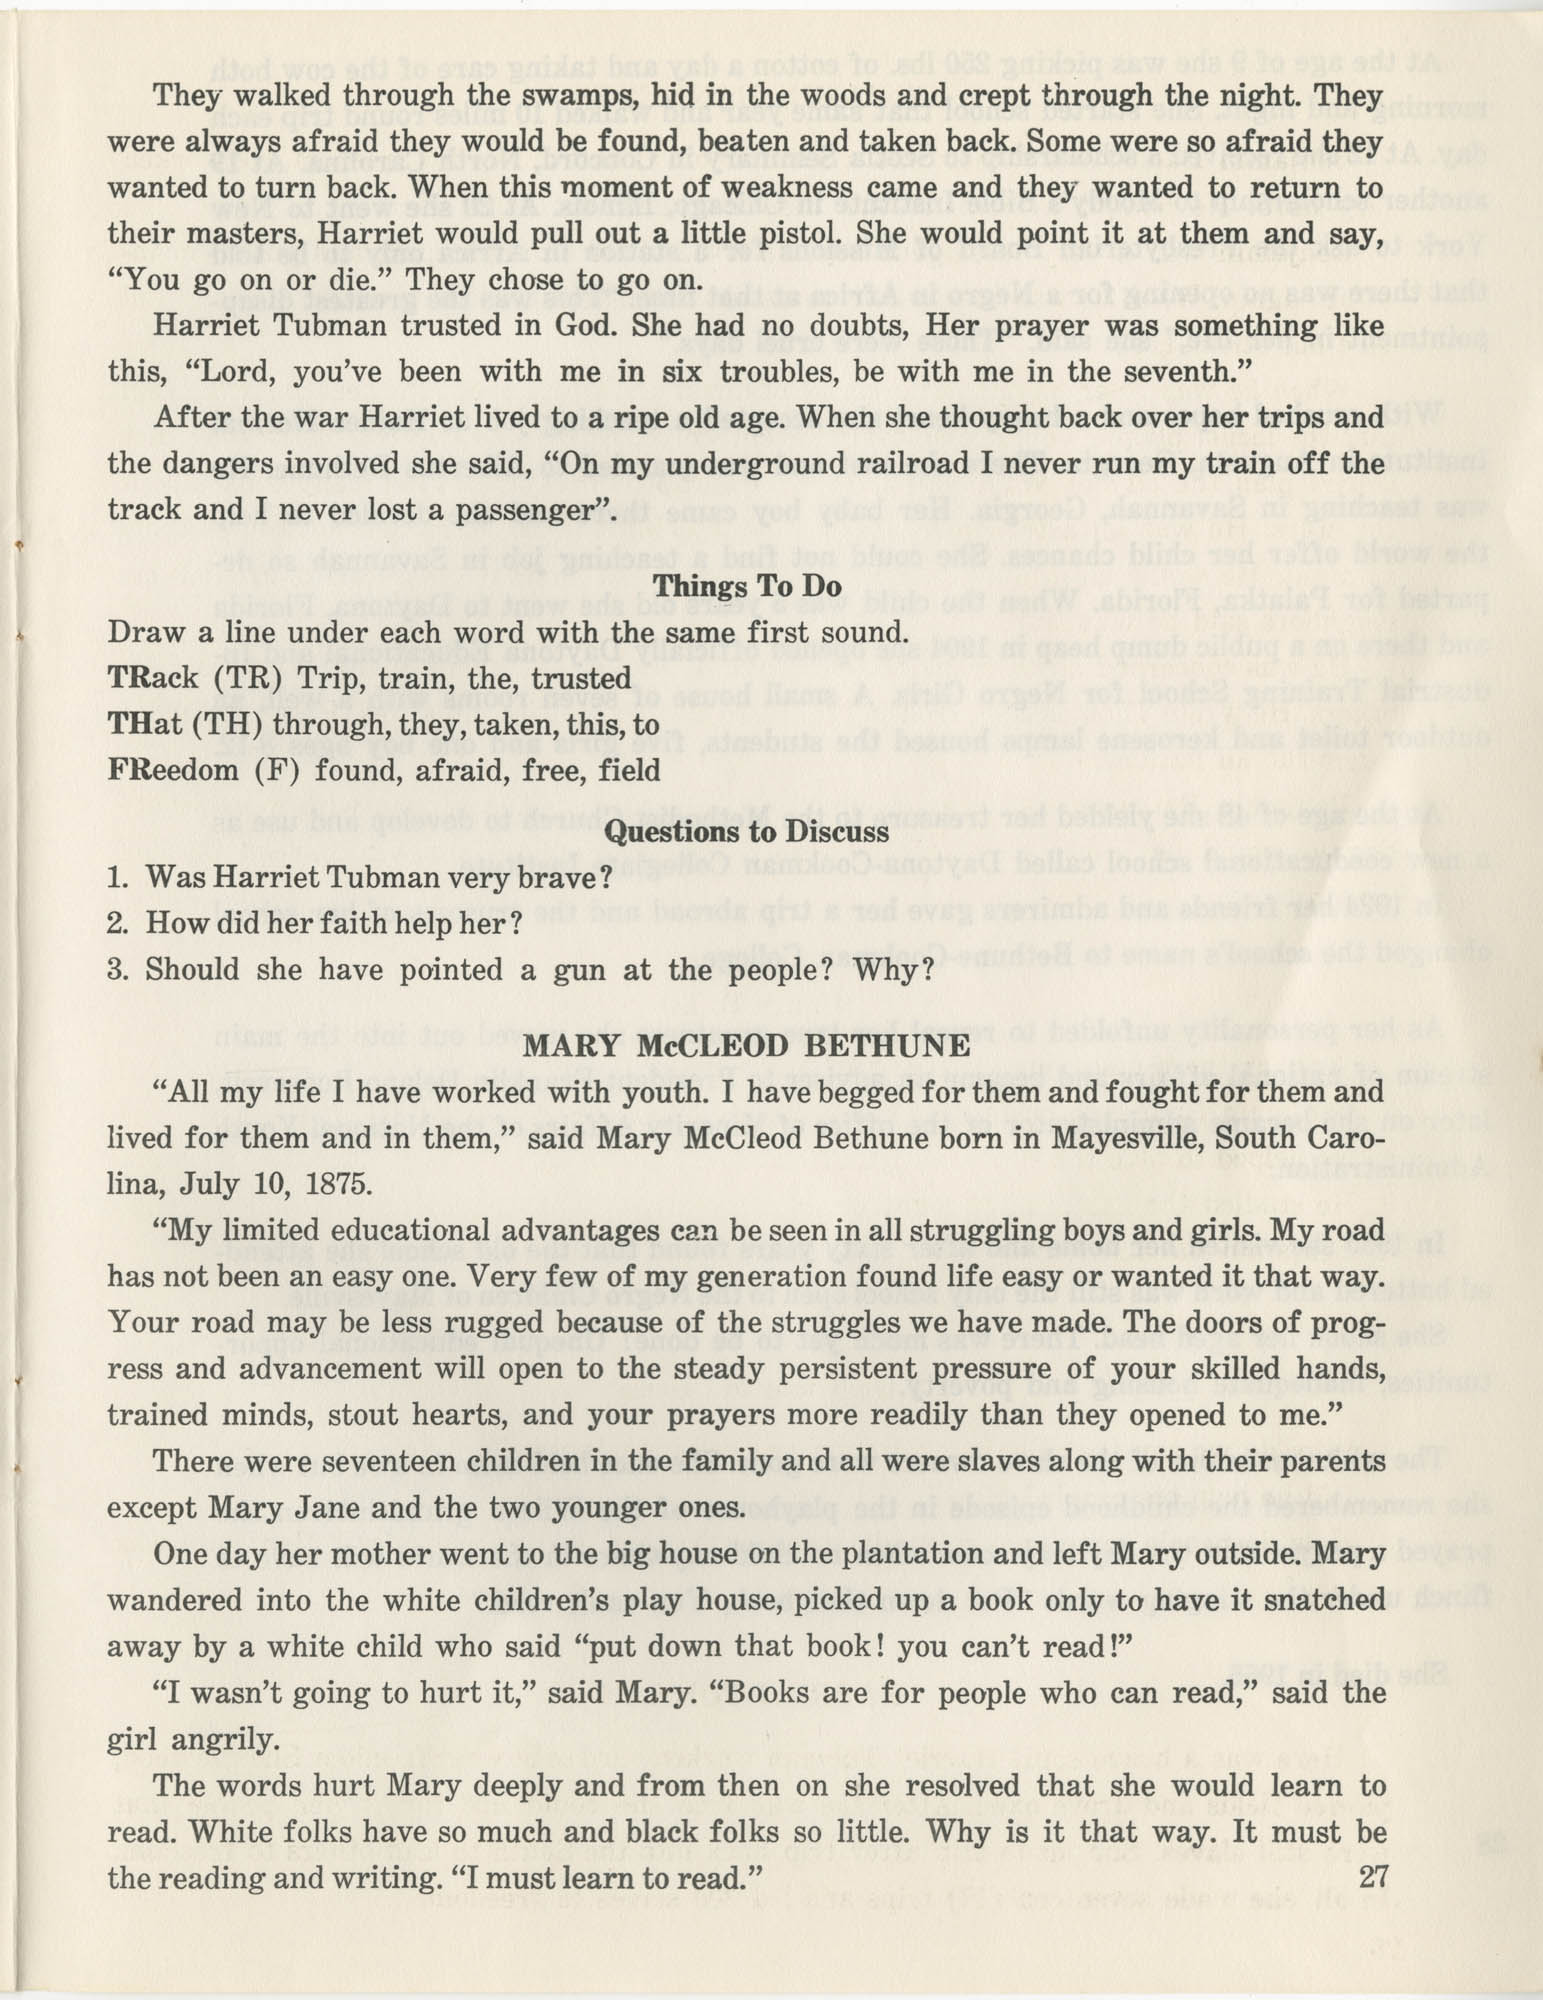 Southern Christian Leadership Conference Citizenship School Workbook, Page 27